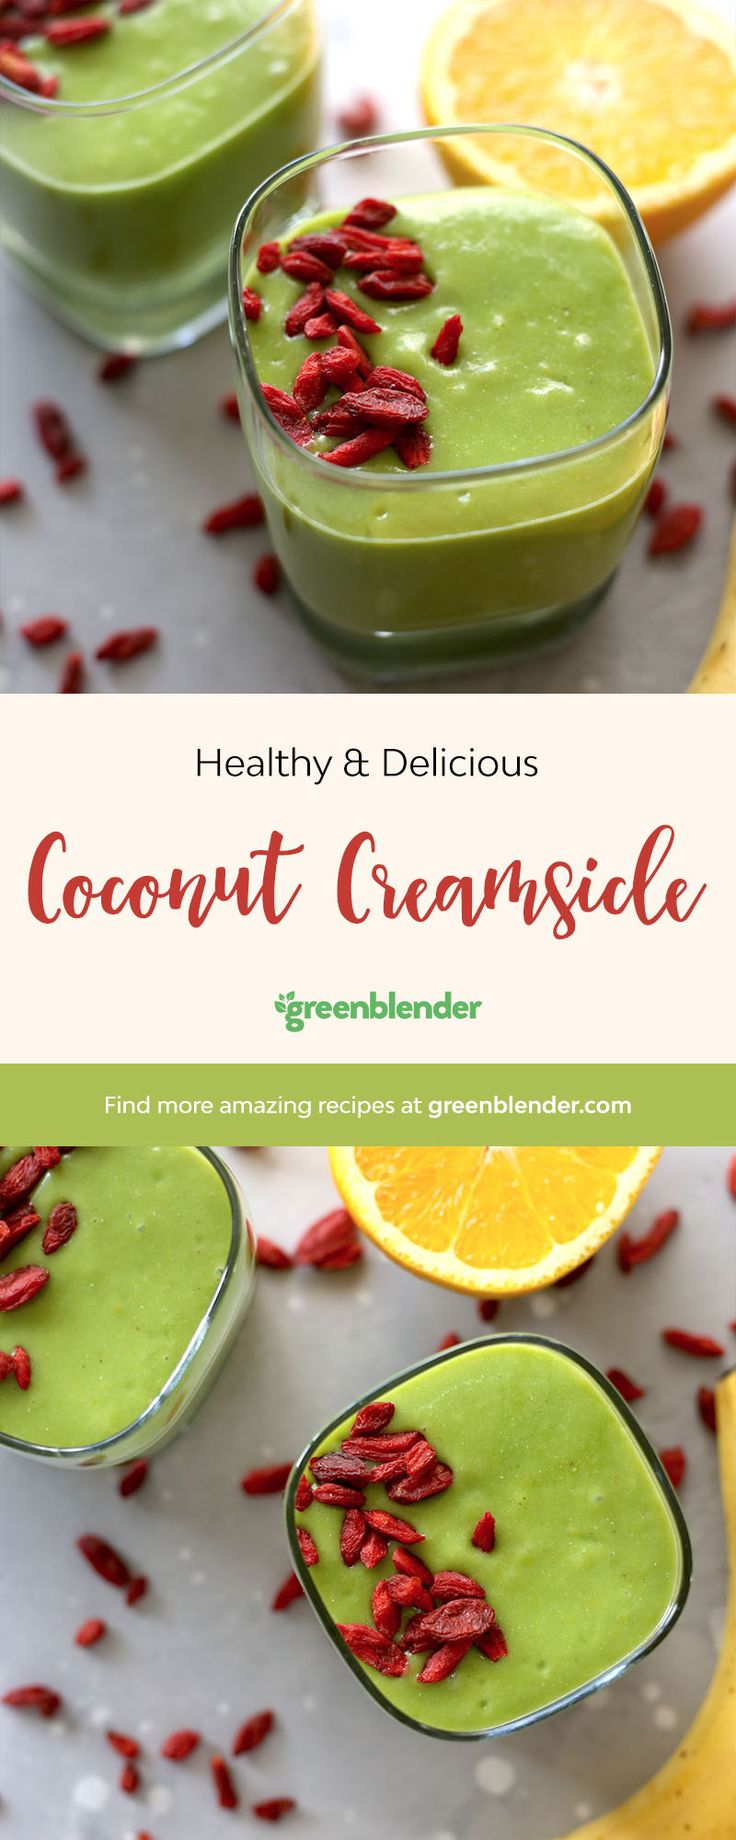 This low fat, low calorie smoothie is tropical vacation for your taste buds